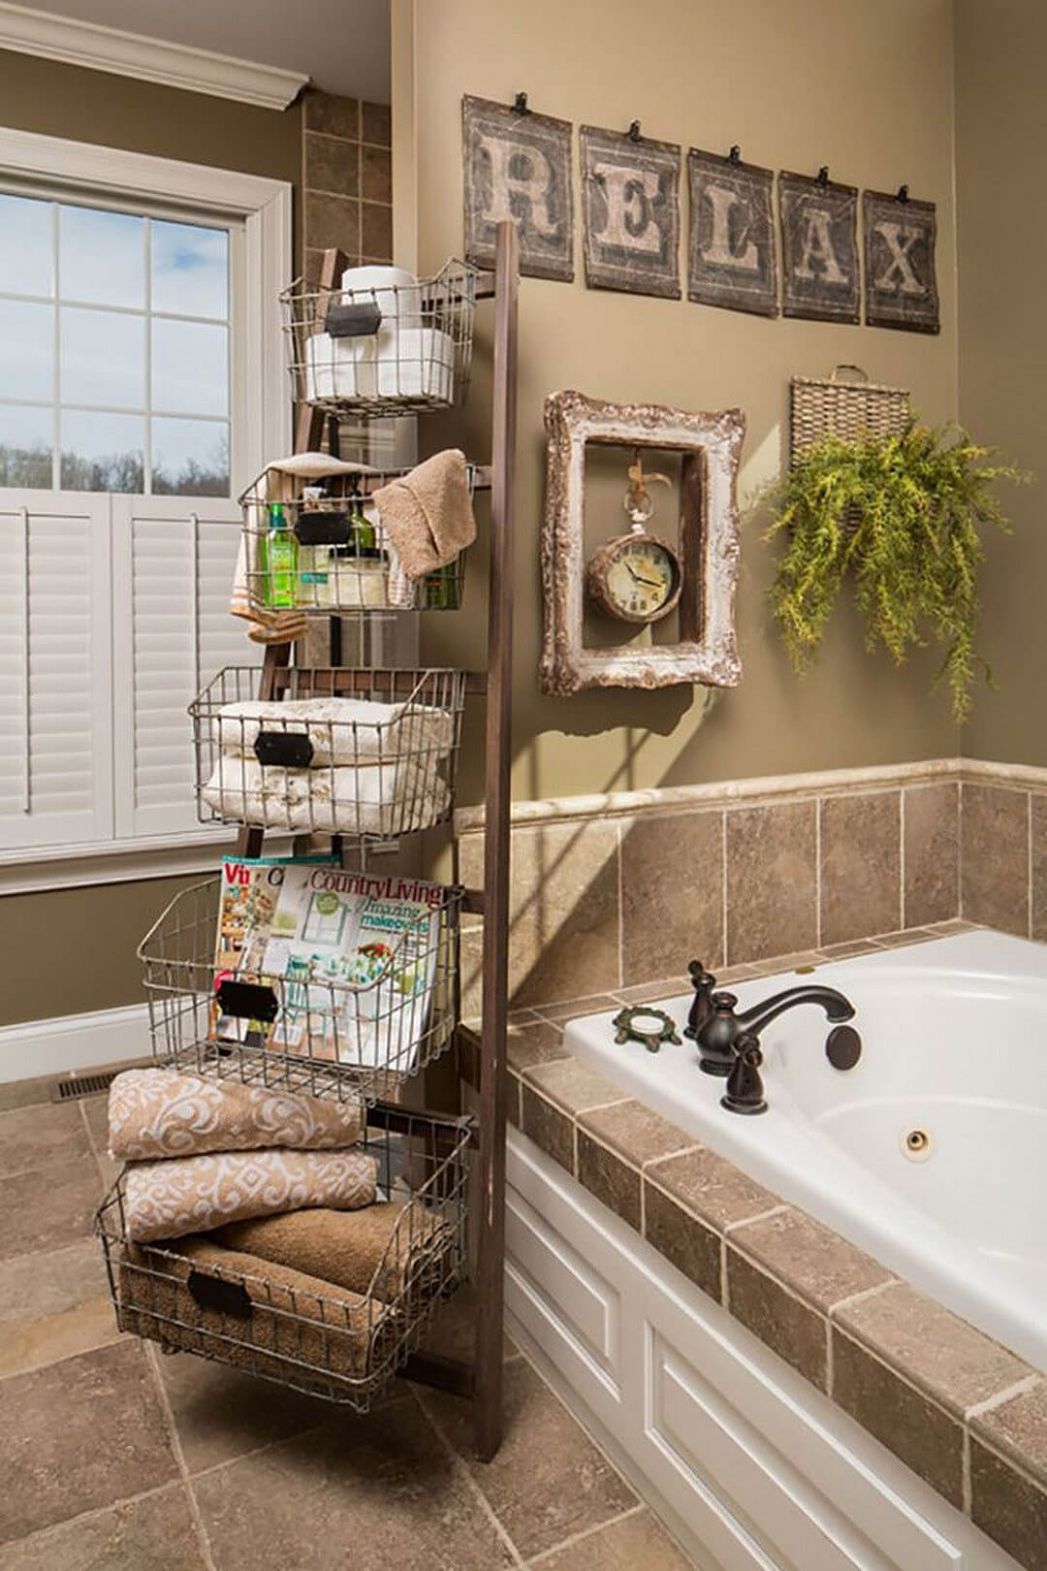 9 Best Towel Storage Ideas and Designs for 9 - bathroom ideas for towels